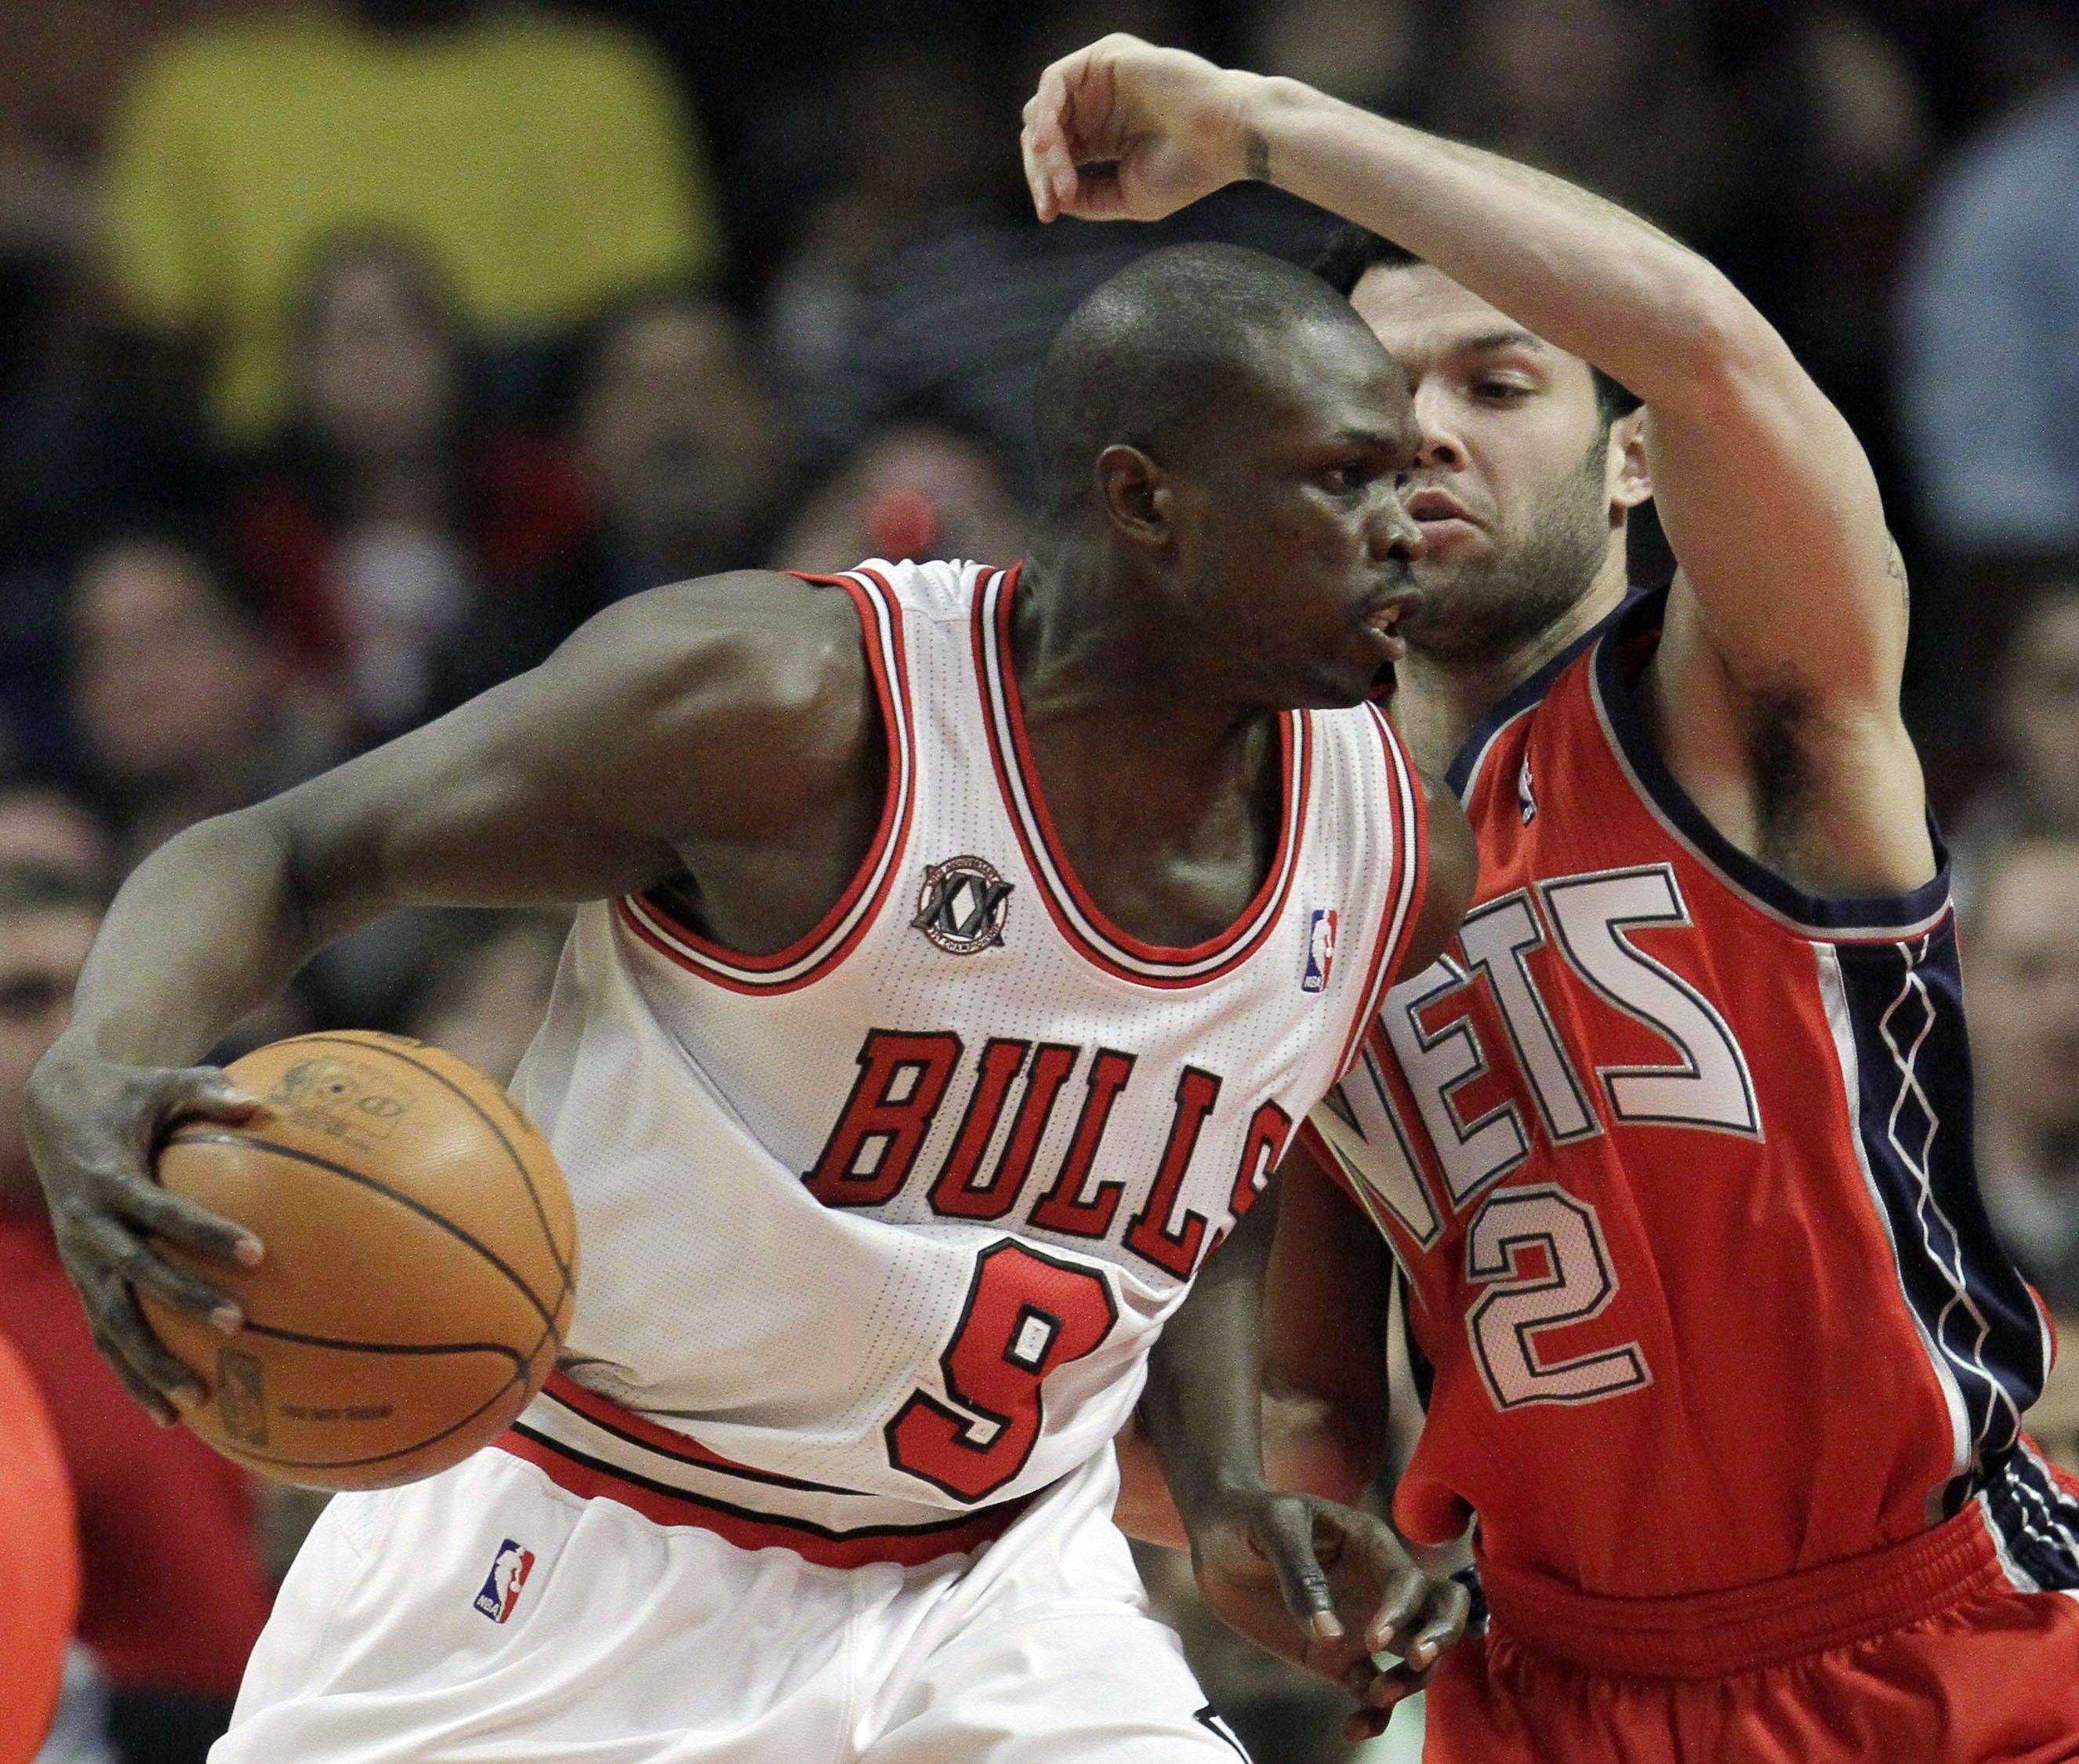 Luol Deng, left, drives to the basket as the Nets' Jordan Farmar guards during the first quarter Wednesday in Chicago.